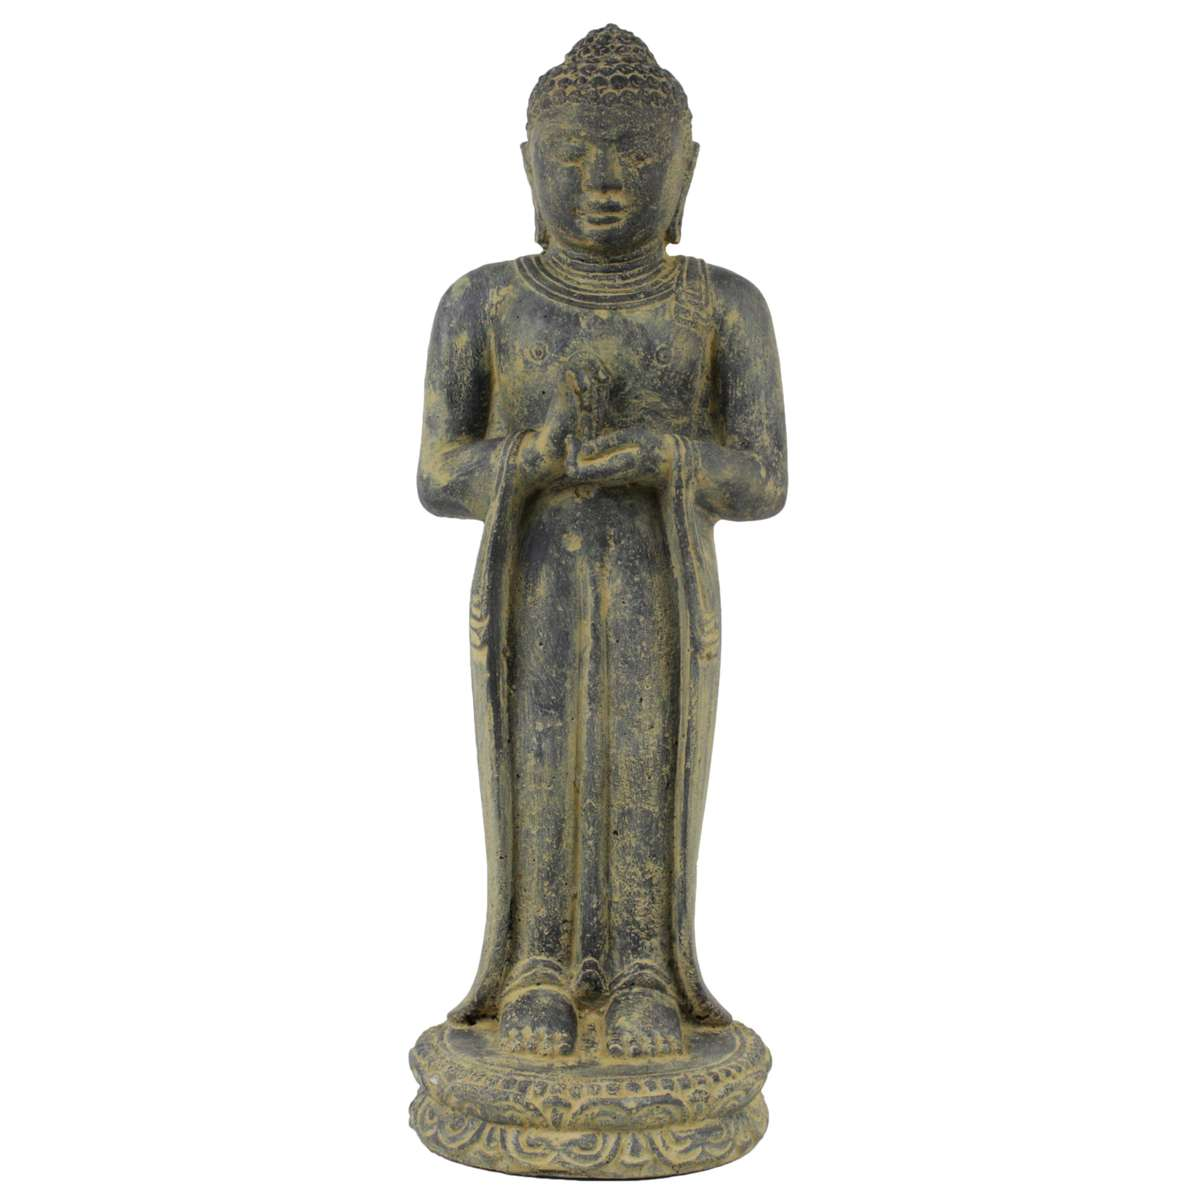 buddha figur skulptur stein gartenfigur lavasand bali buddha gott deko 50 cm ebay. Black Bedroom Furniture Sets. Home Design Ideas